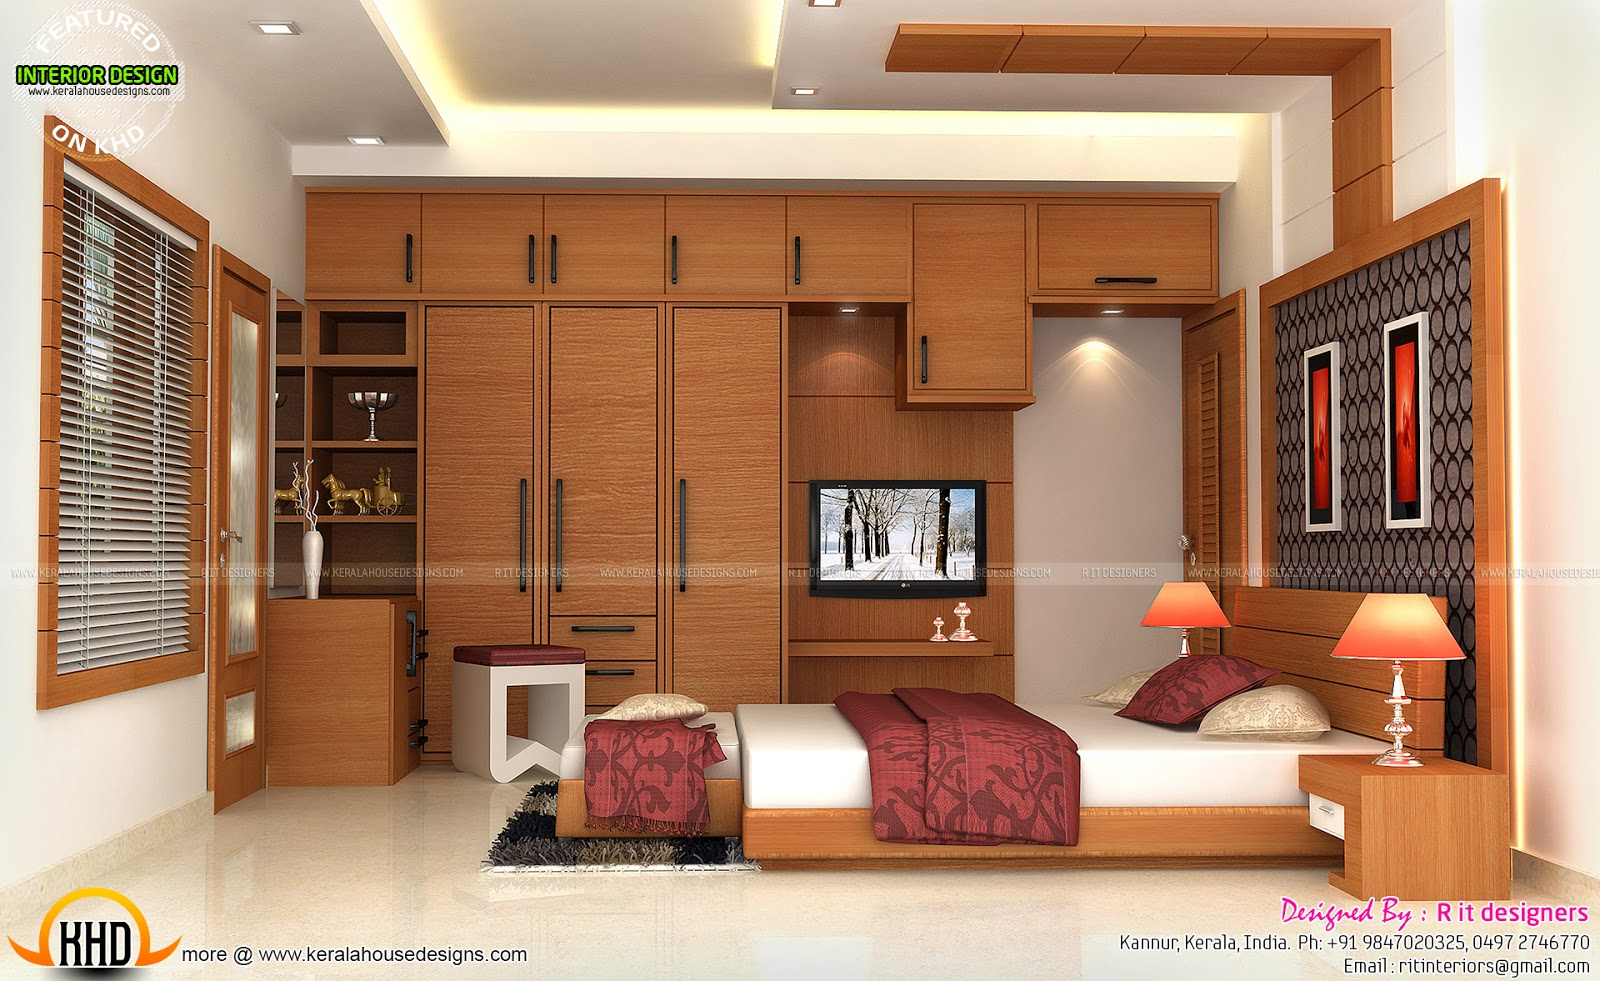 Interiors of bedrooms and kitchen - Kerala home design and ...